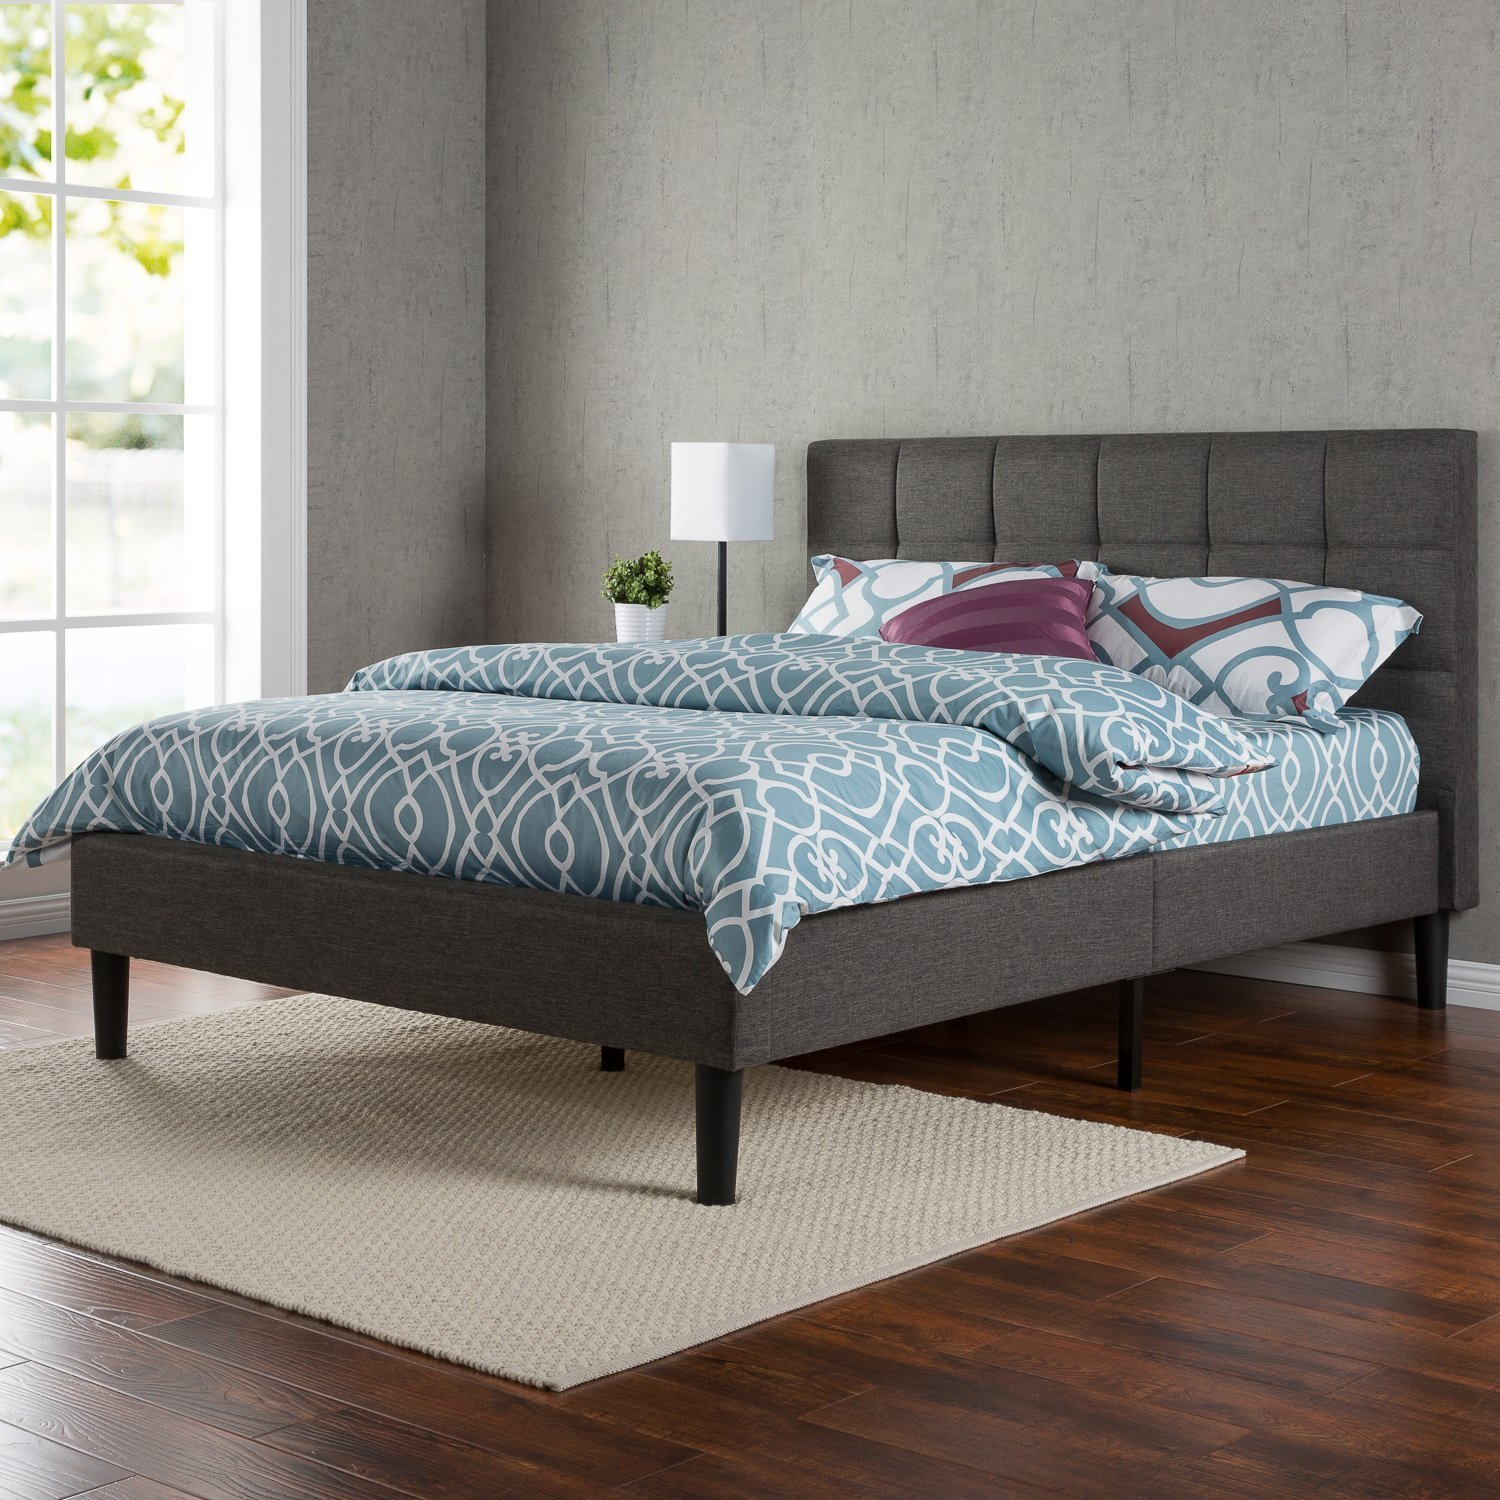 zinus upholstered square stitched platform bed with wooden slats queen